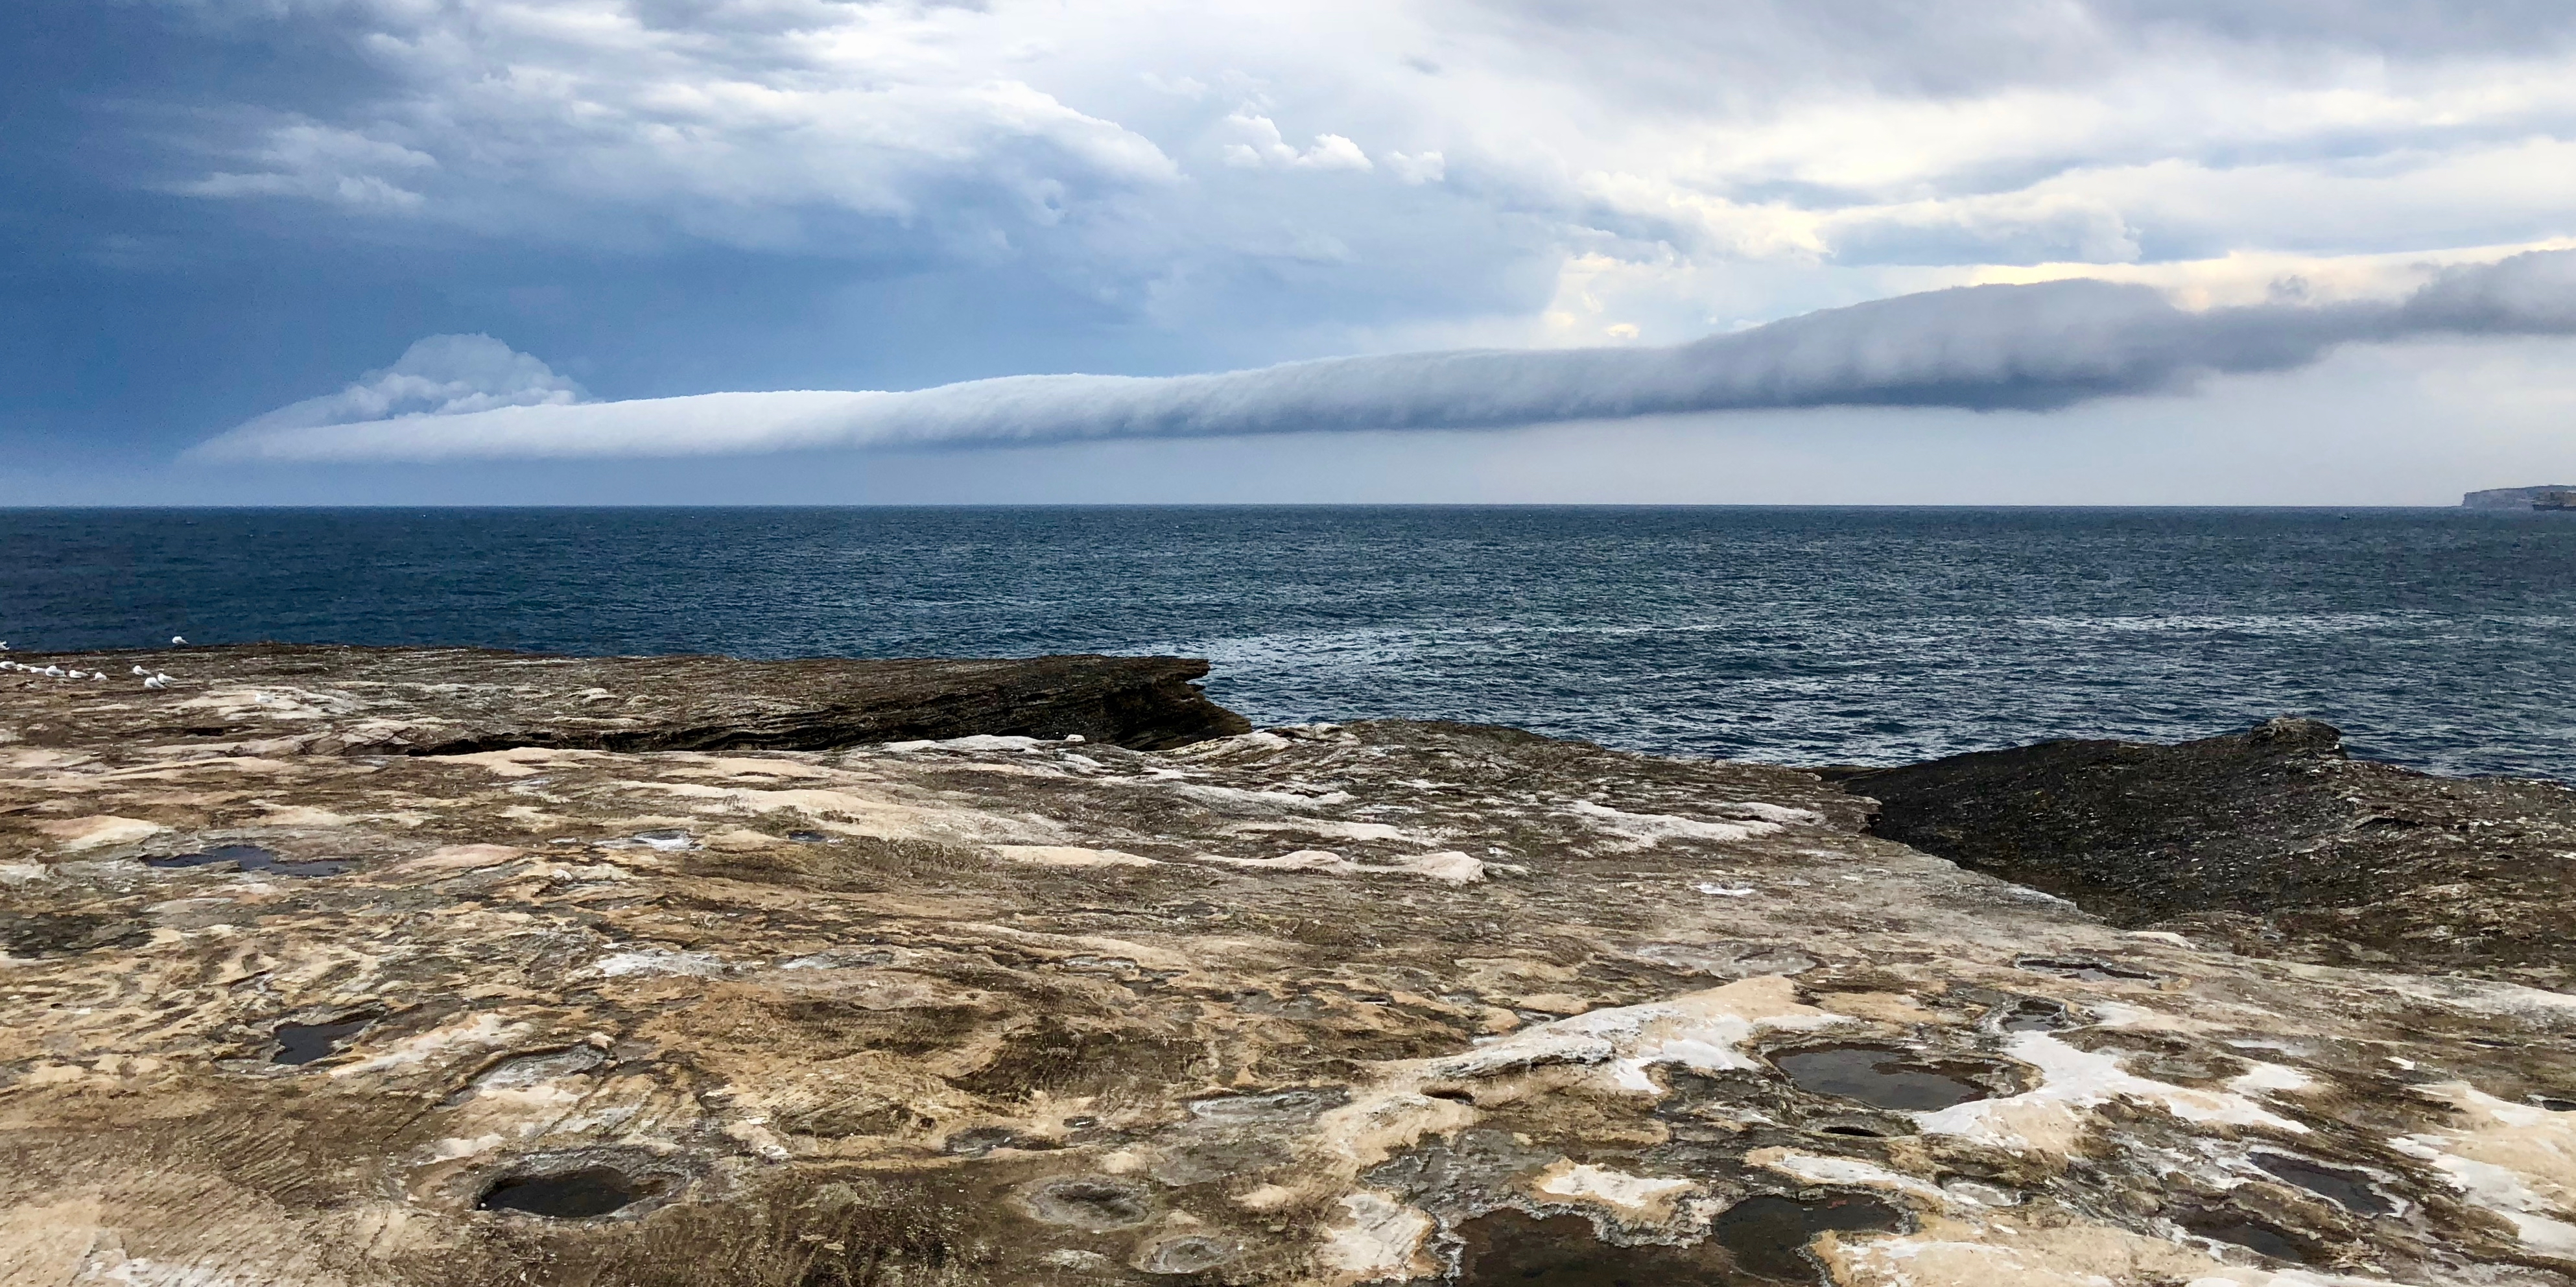 Storm rolling over Coogee, Rock, Sea, Sky, Water, HQ Photo